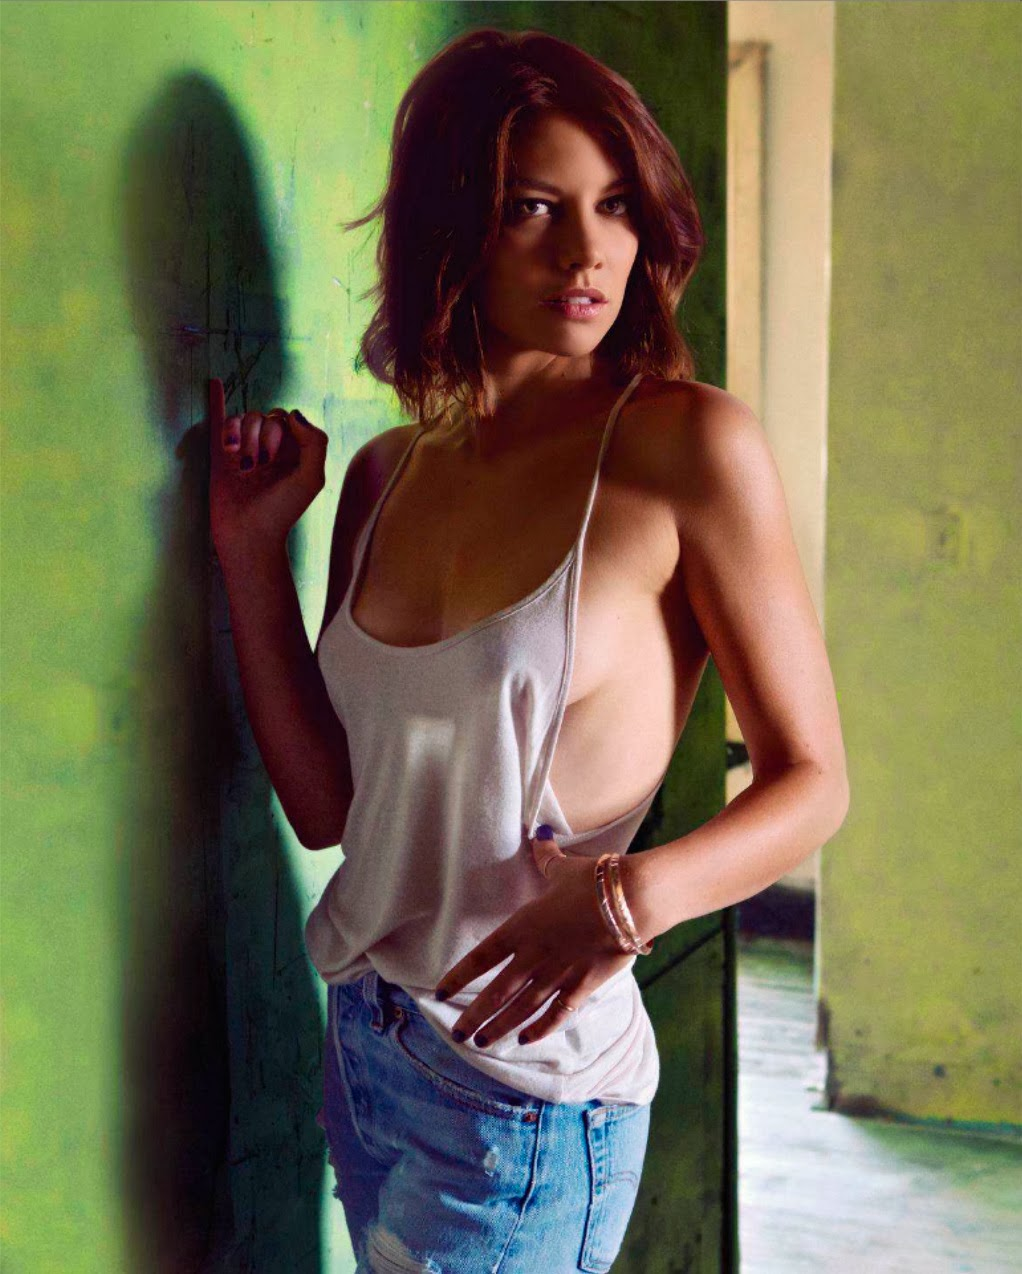 Apologise, but, Lauren cohan naked photo shoot